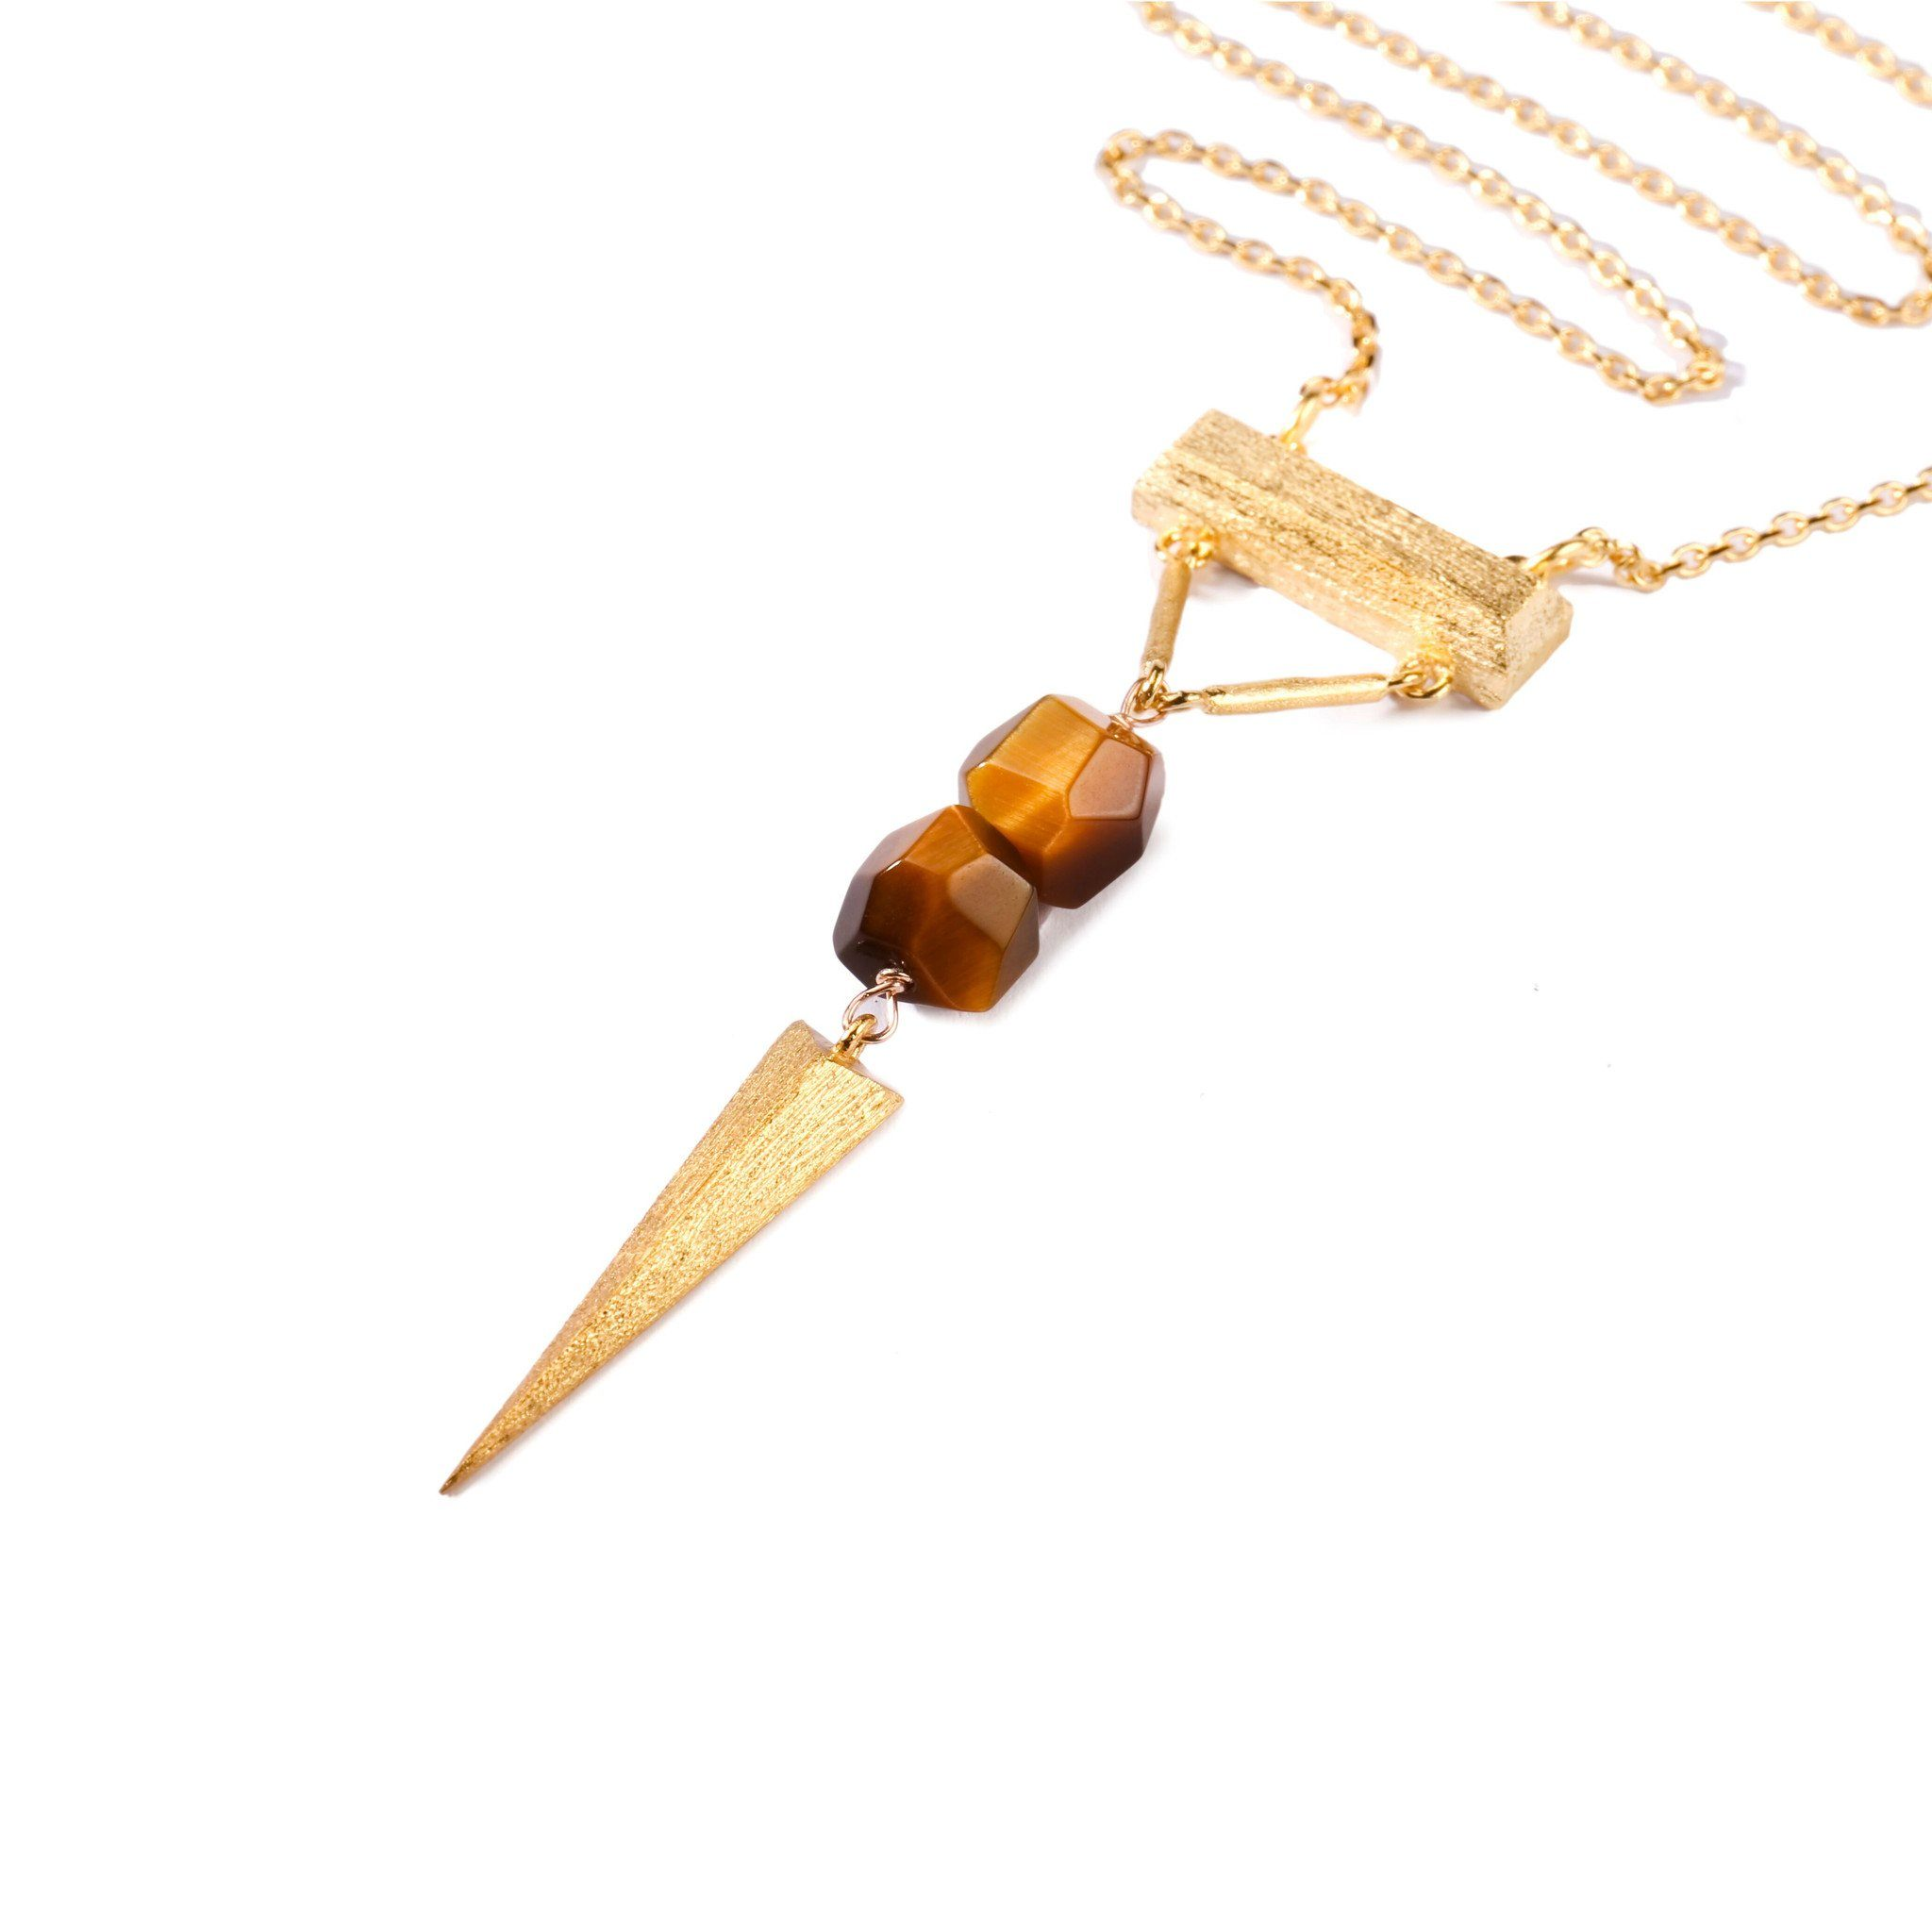 Necklace - Mantra Dagger With Horizontal Bar Necklace